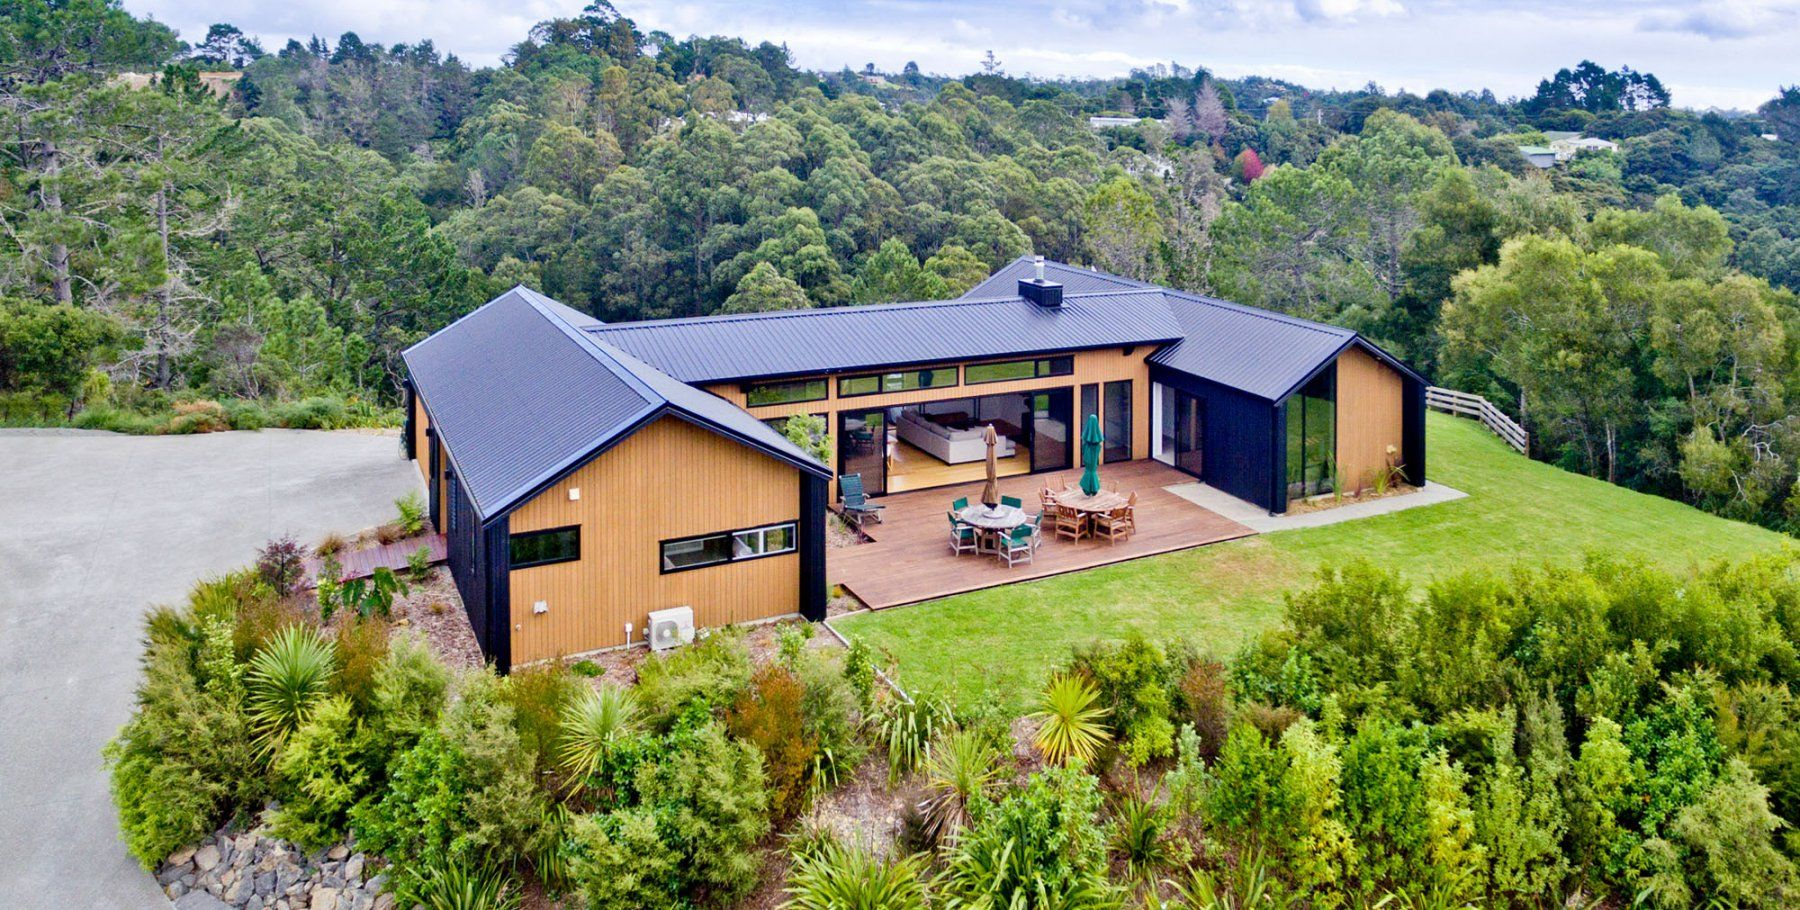 Redvale Home - ARCreate » archipro.co.nz